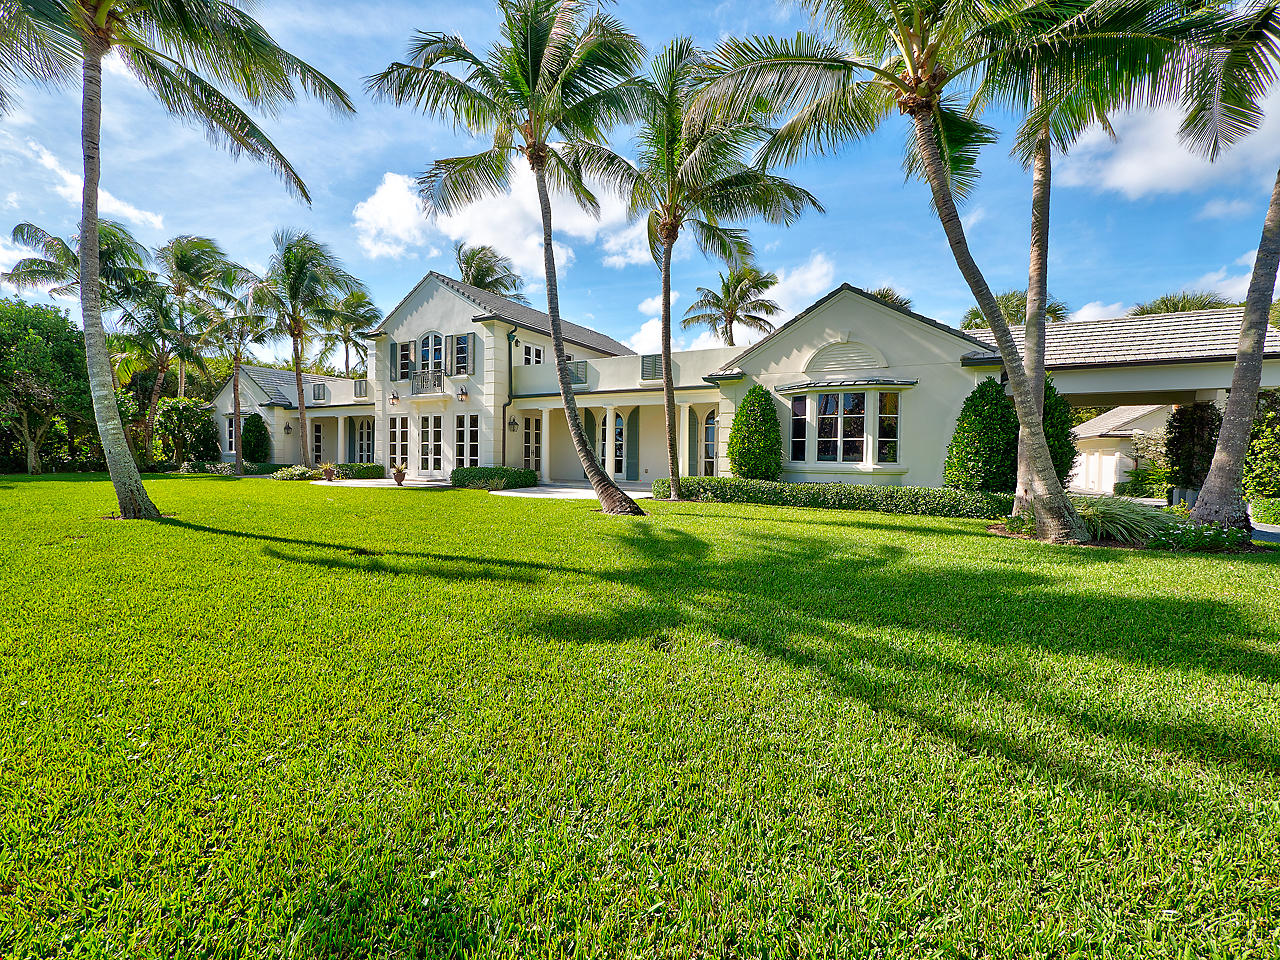 HOBE SOUND PROPERTY